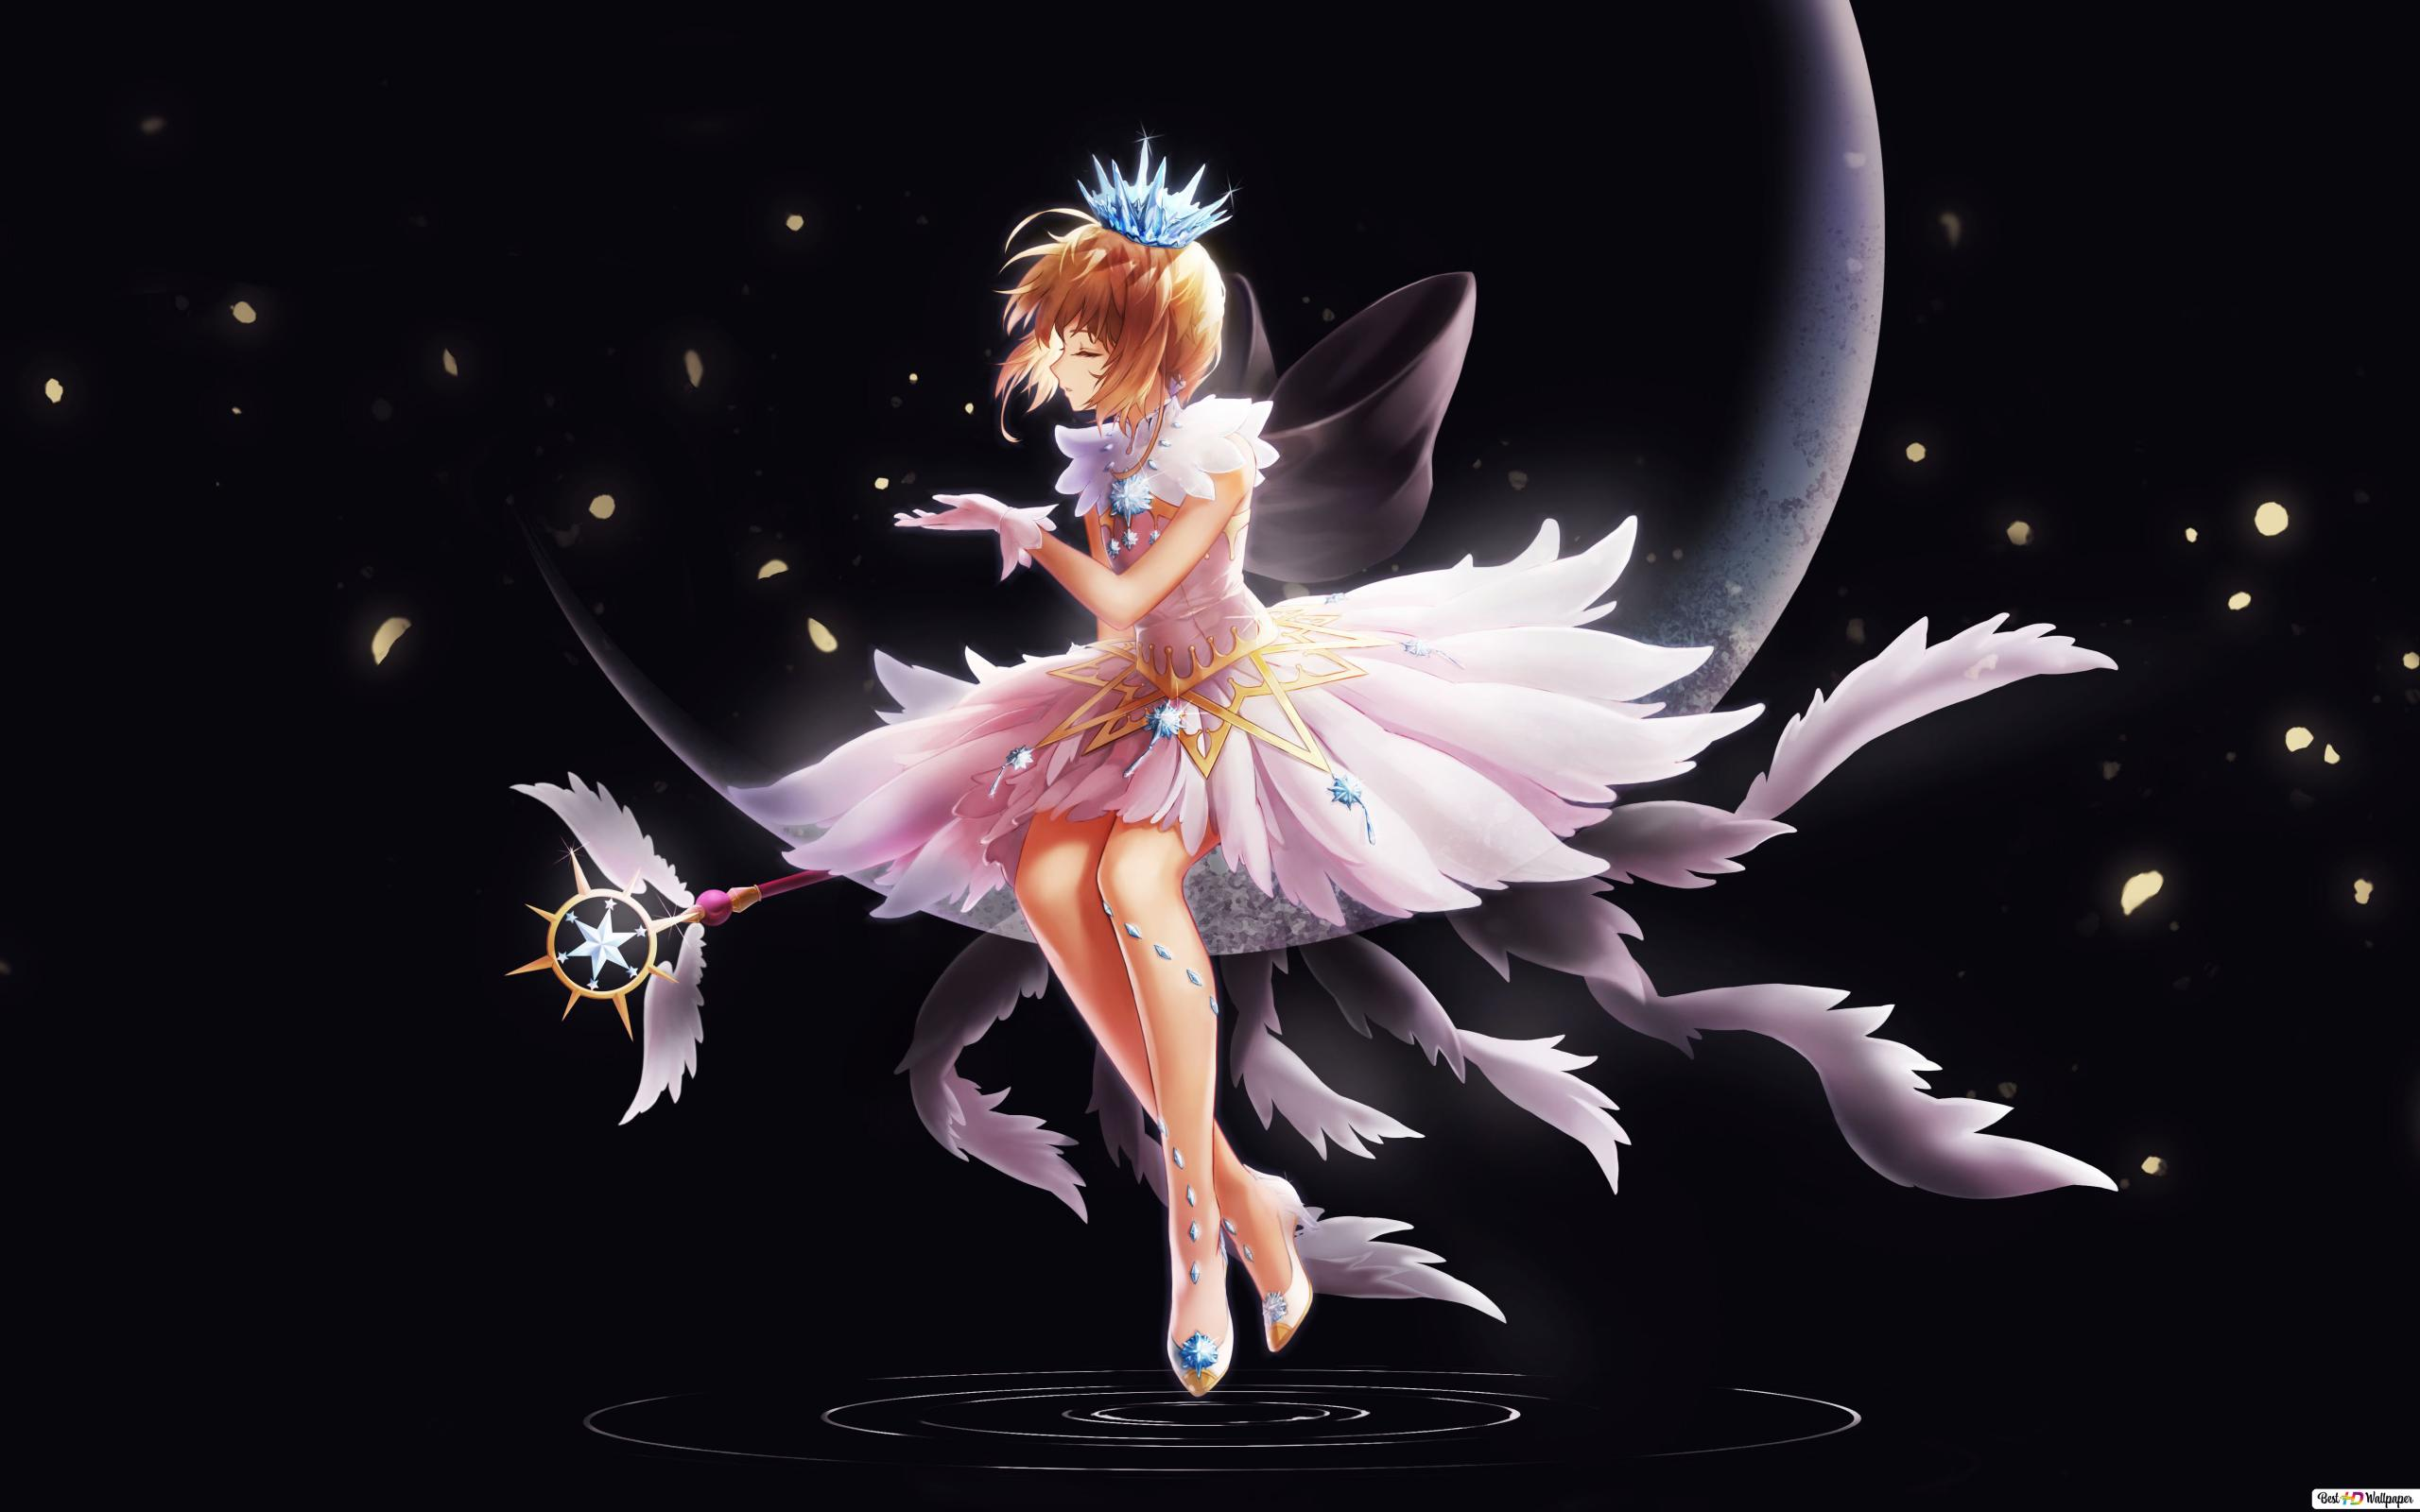 Descargar Fondo De Pantalla Card Captor Sakura Anime